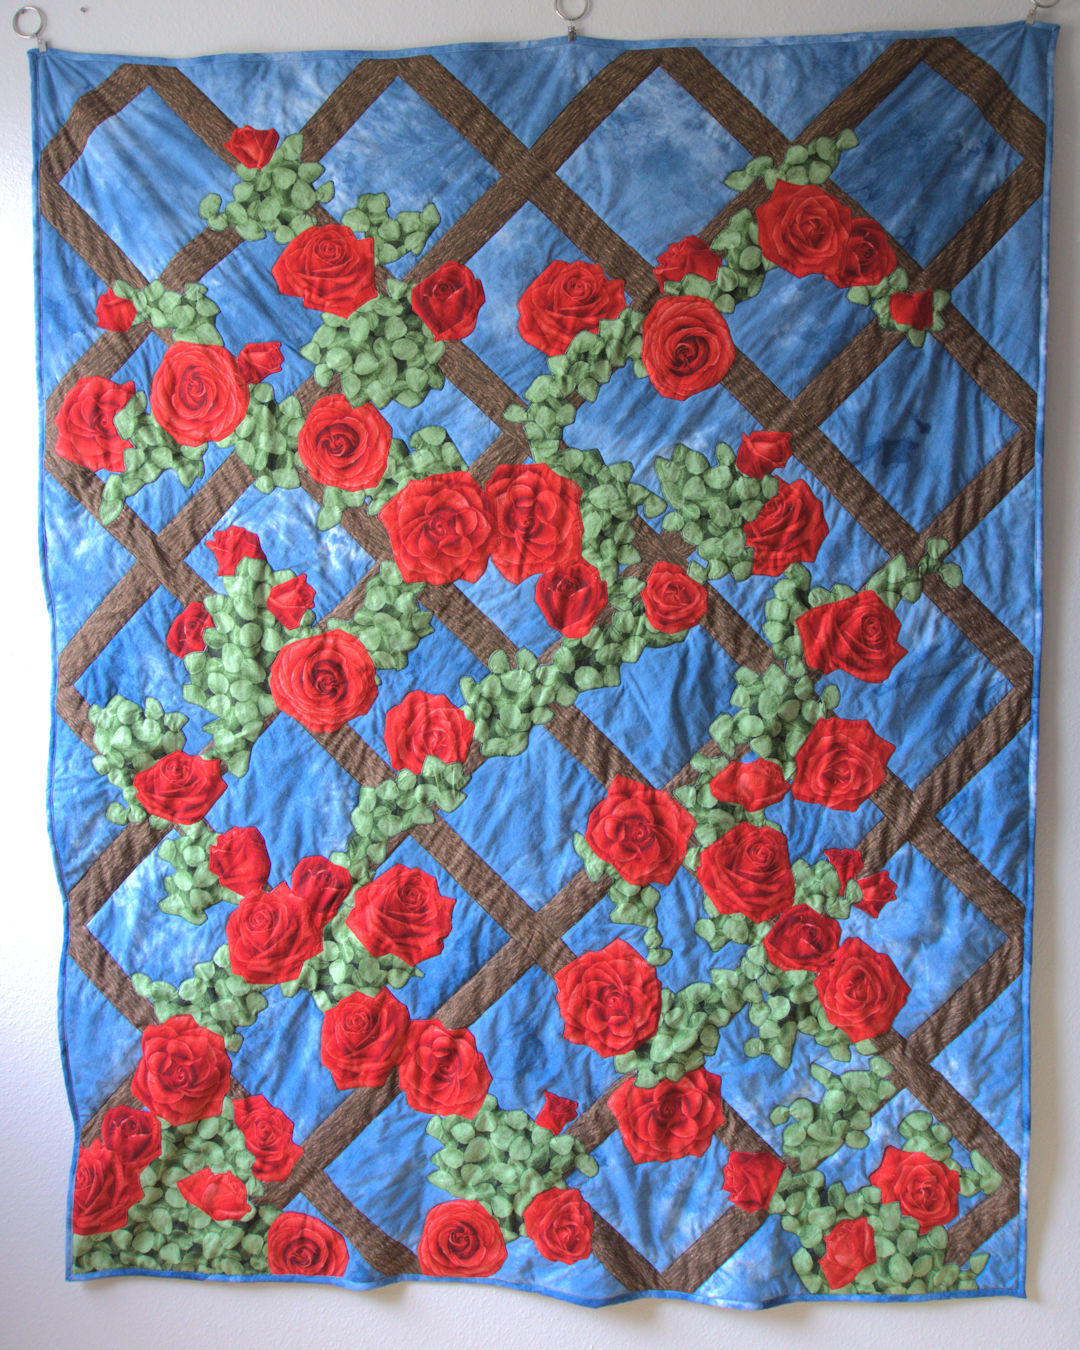 Rose trellis applique quilt